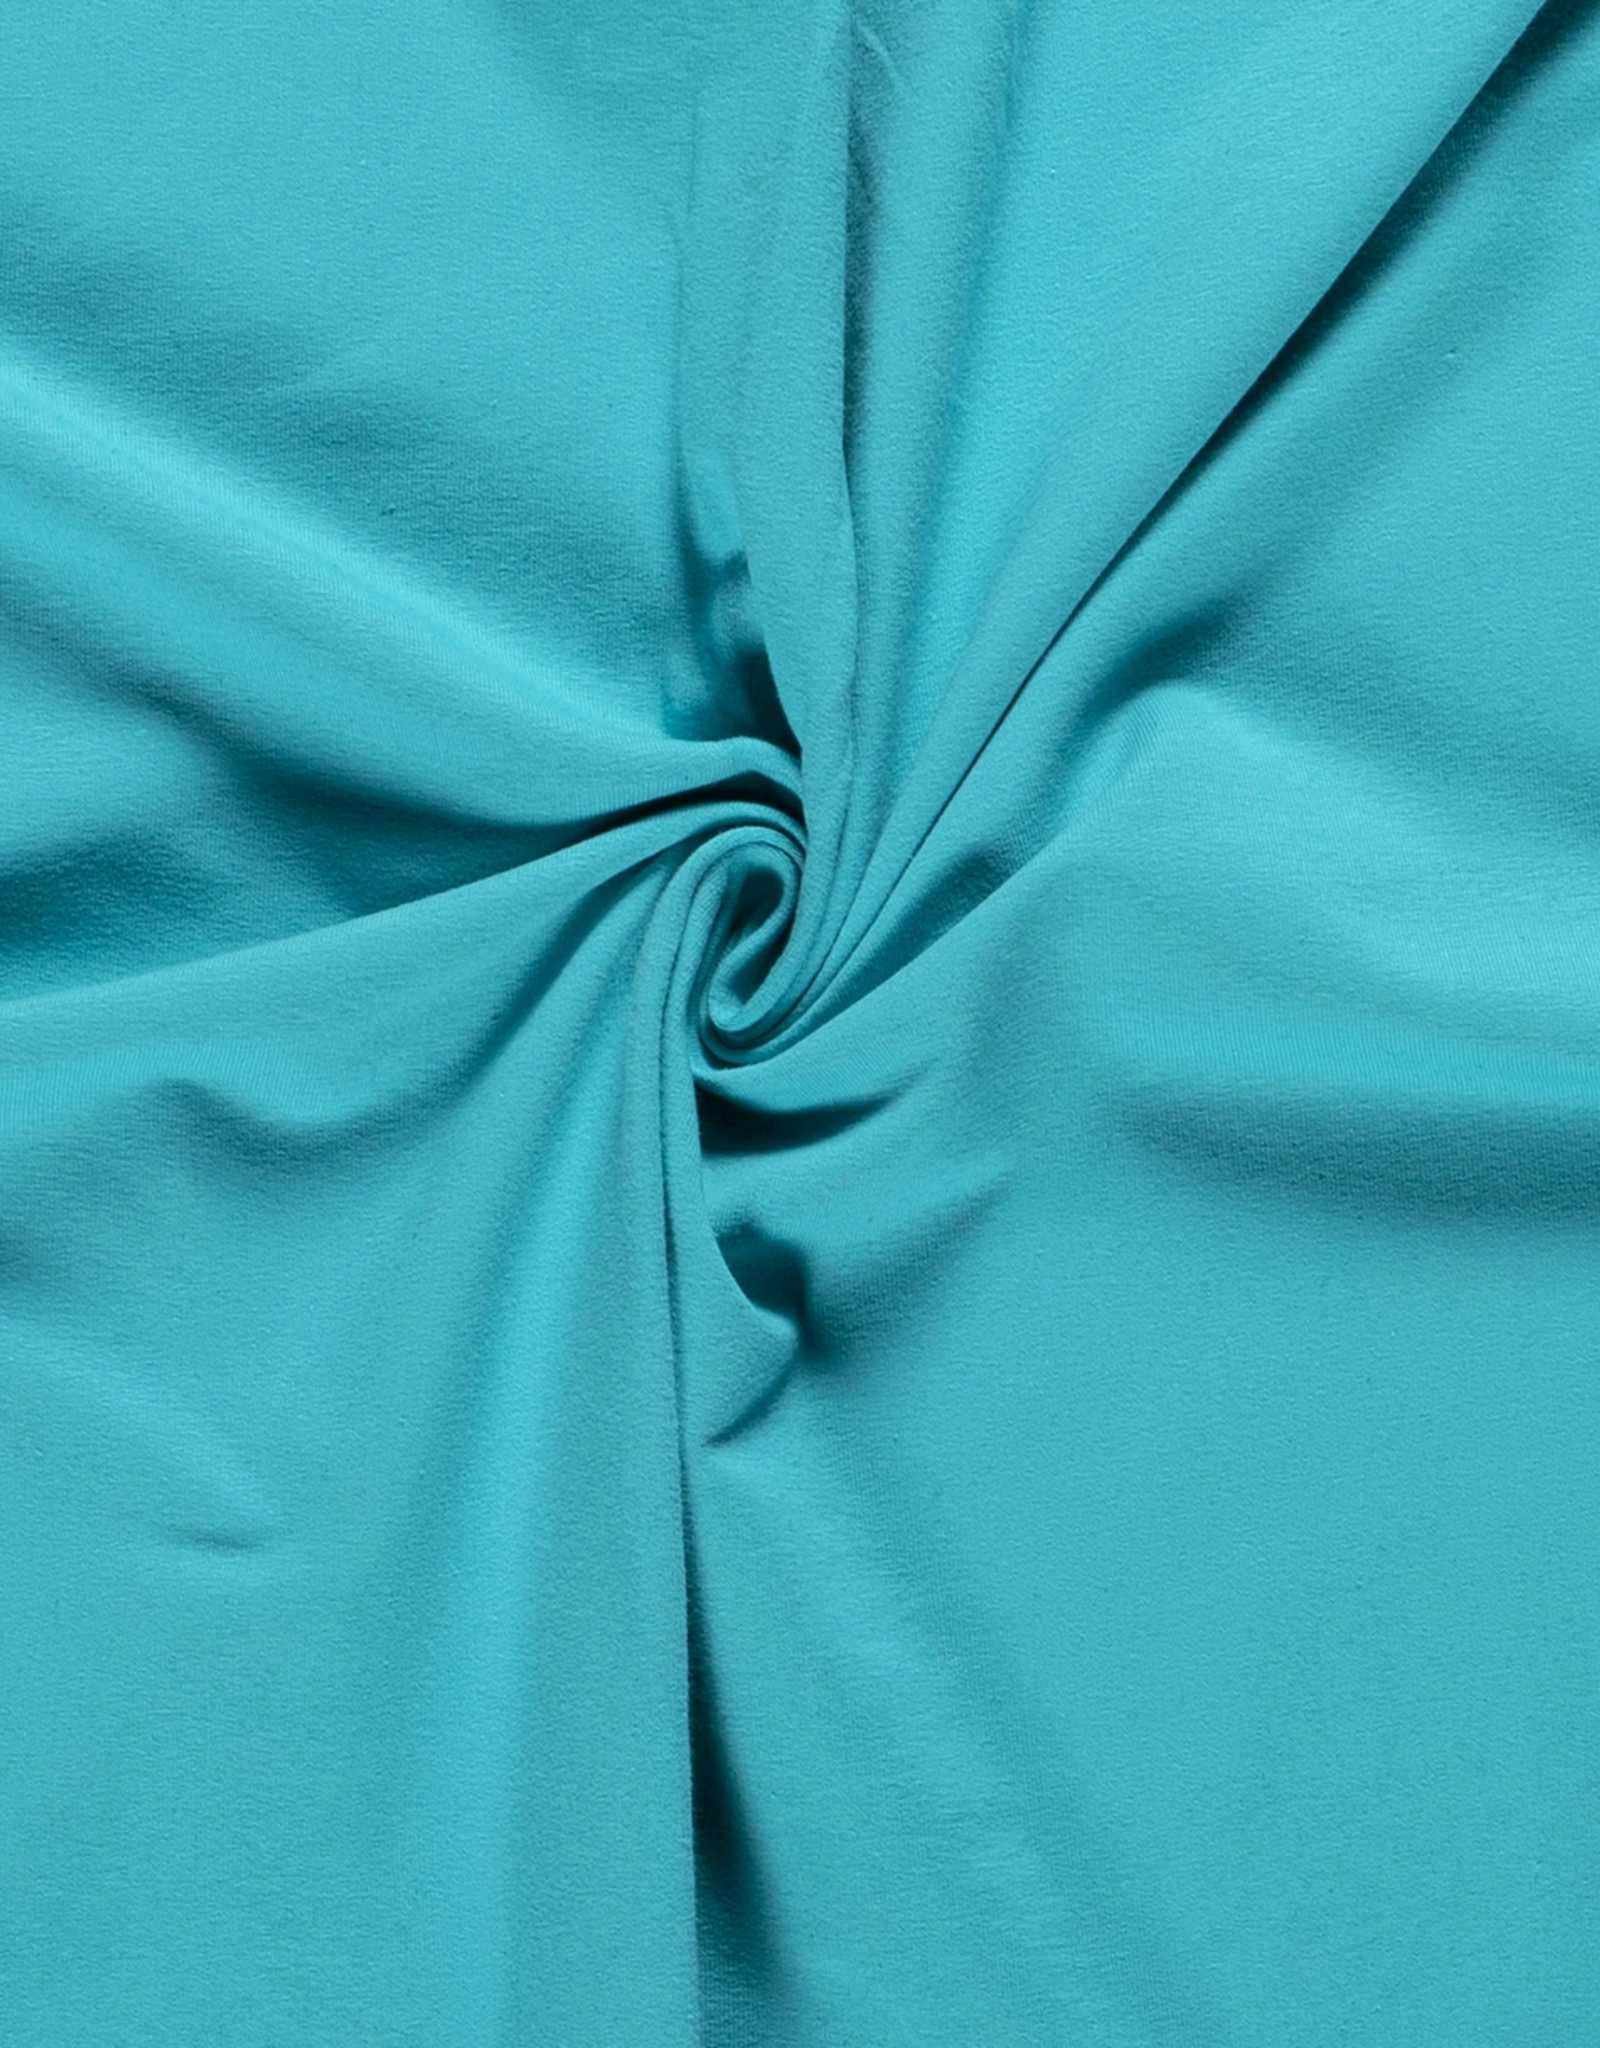 French Terry - Turquoise